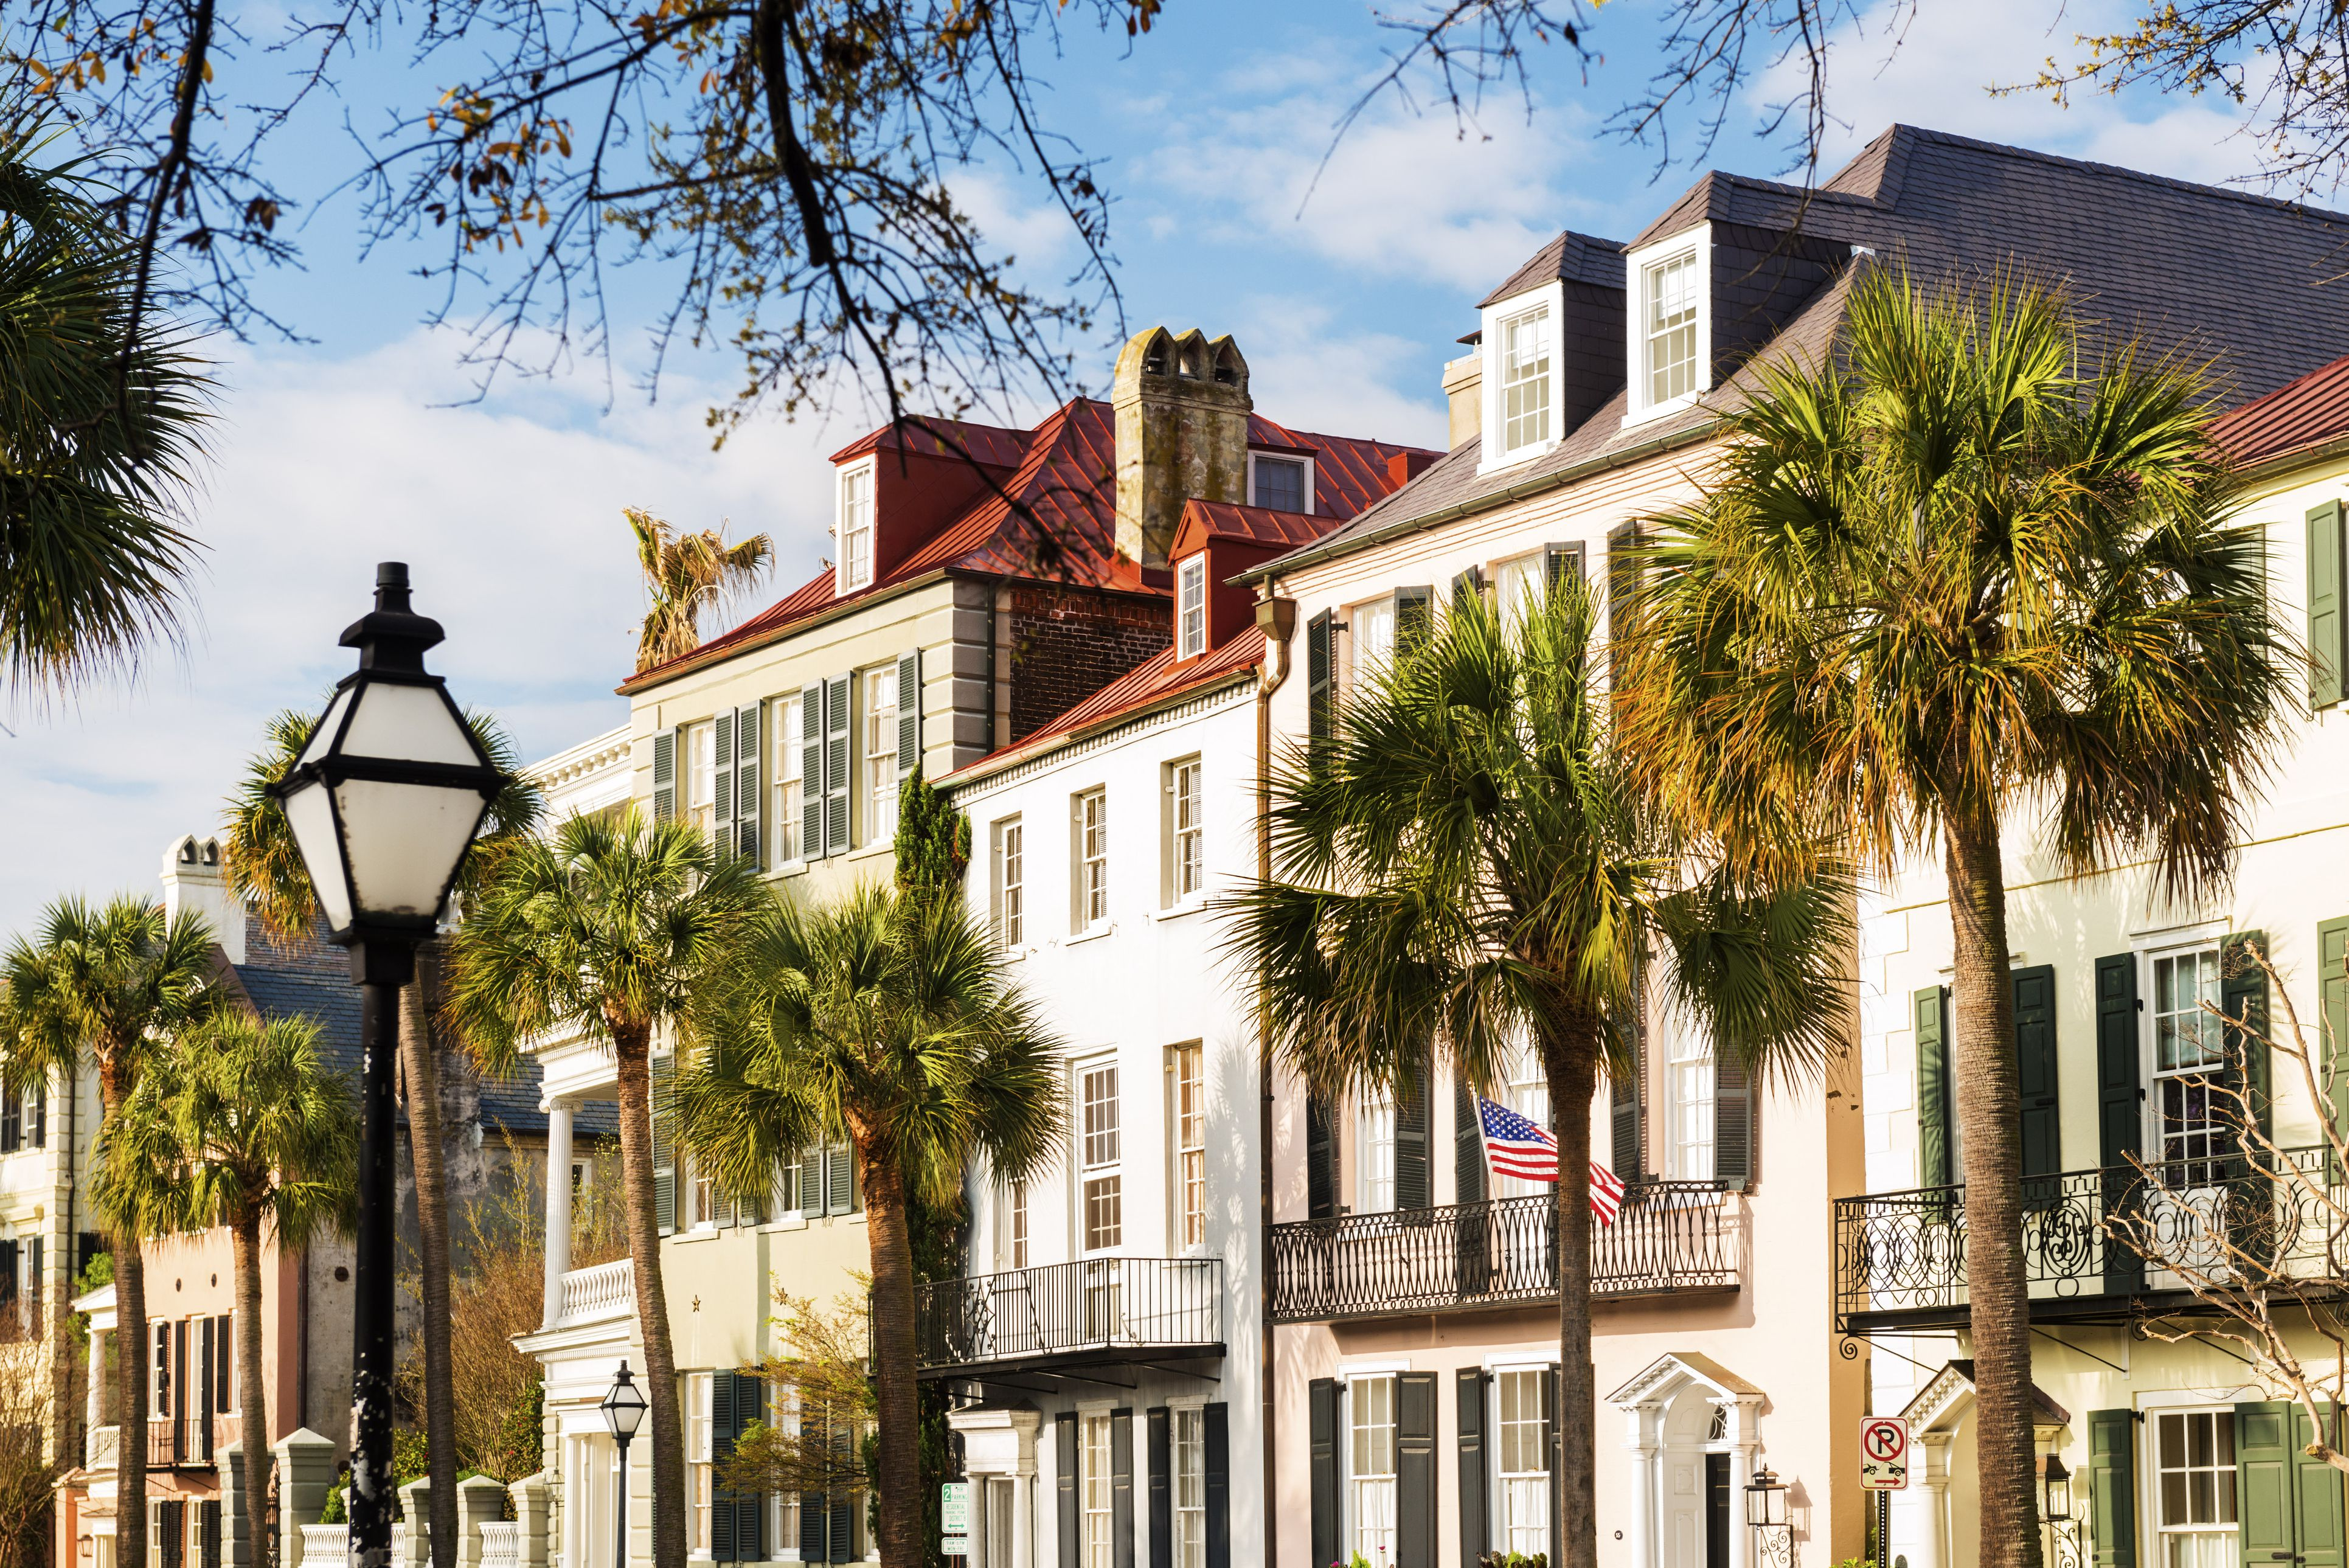 USA, South Carolina, Charleston, Colorful town houses in historical centre